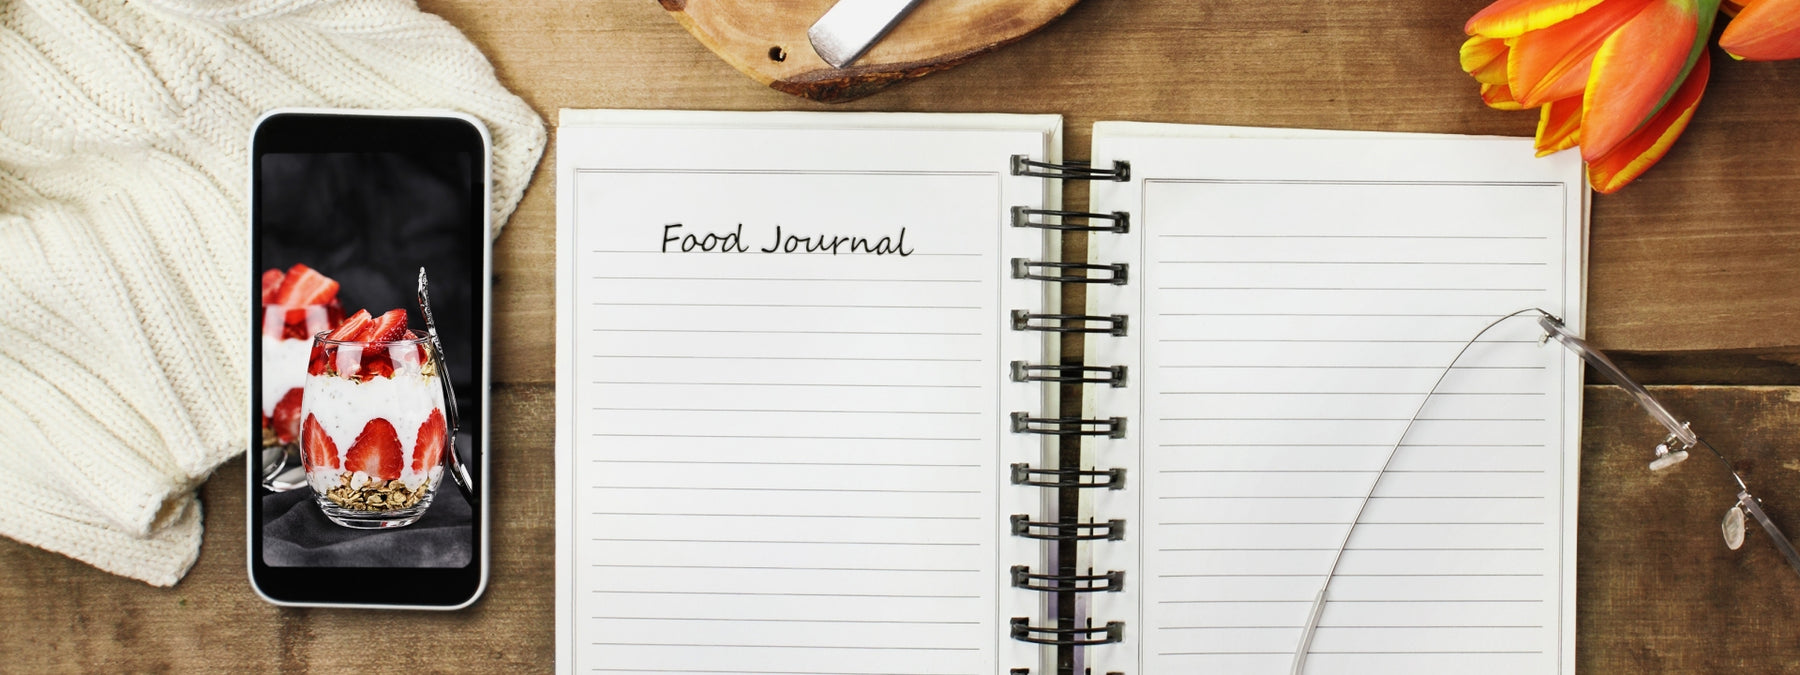 6 Ways to Wean Yourself Off of Food Journaling